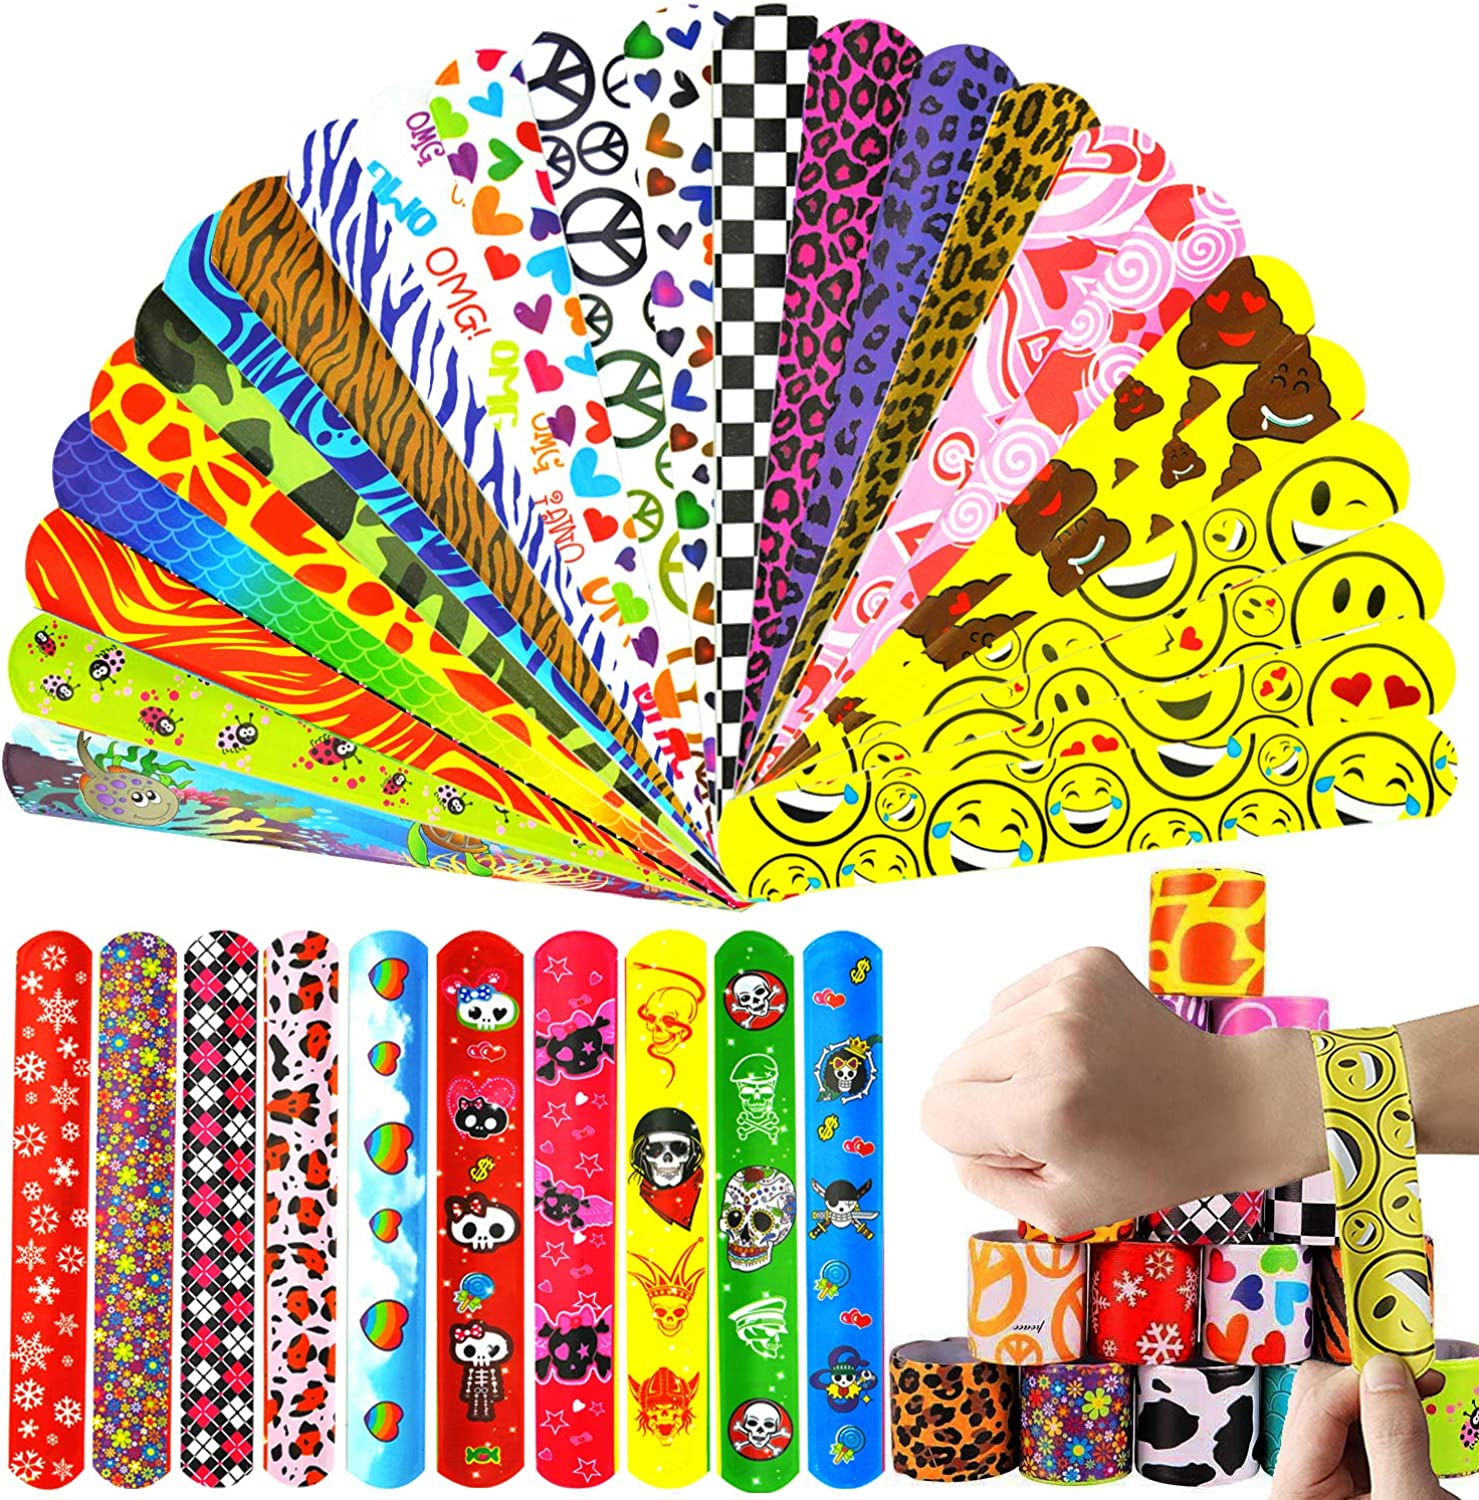 Slap Bracelets for Kids Party Favors, 68 Pack  (34 Designs) with colorful Sweetheart Animal Pirate for Boys Girls Holiday Party Classroom Exchange Gifts